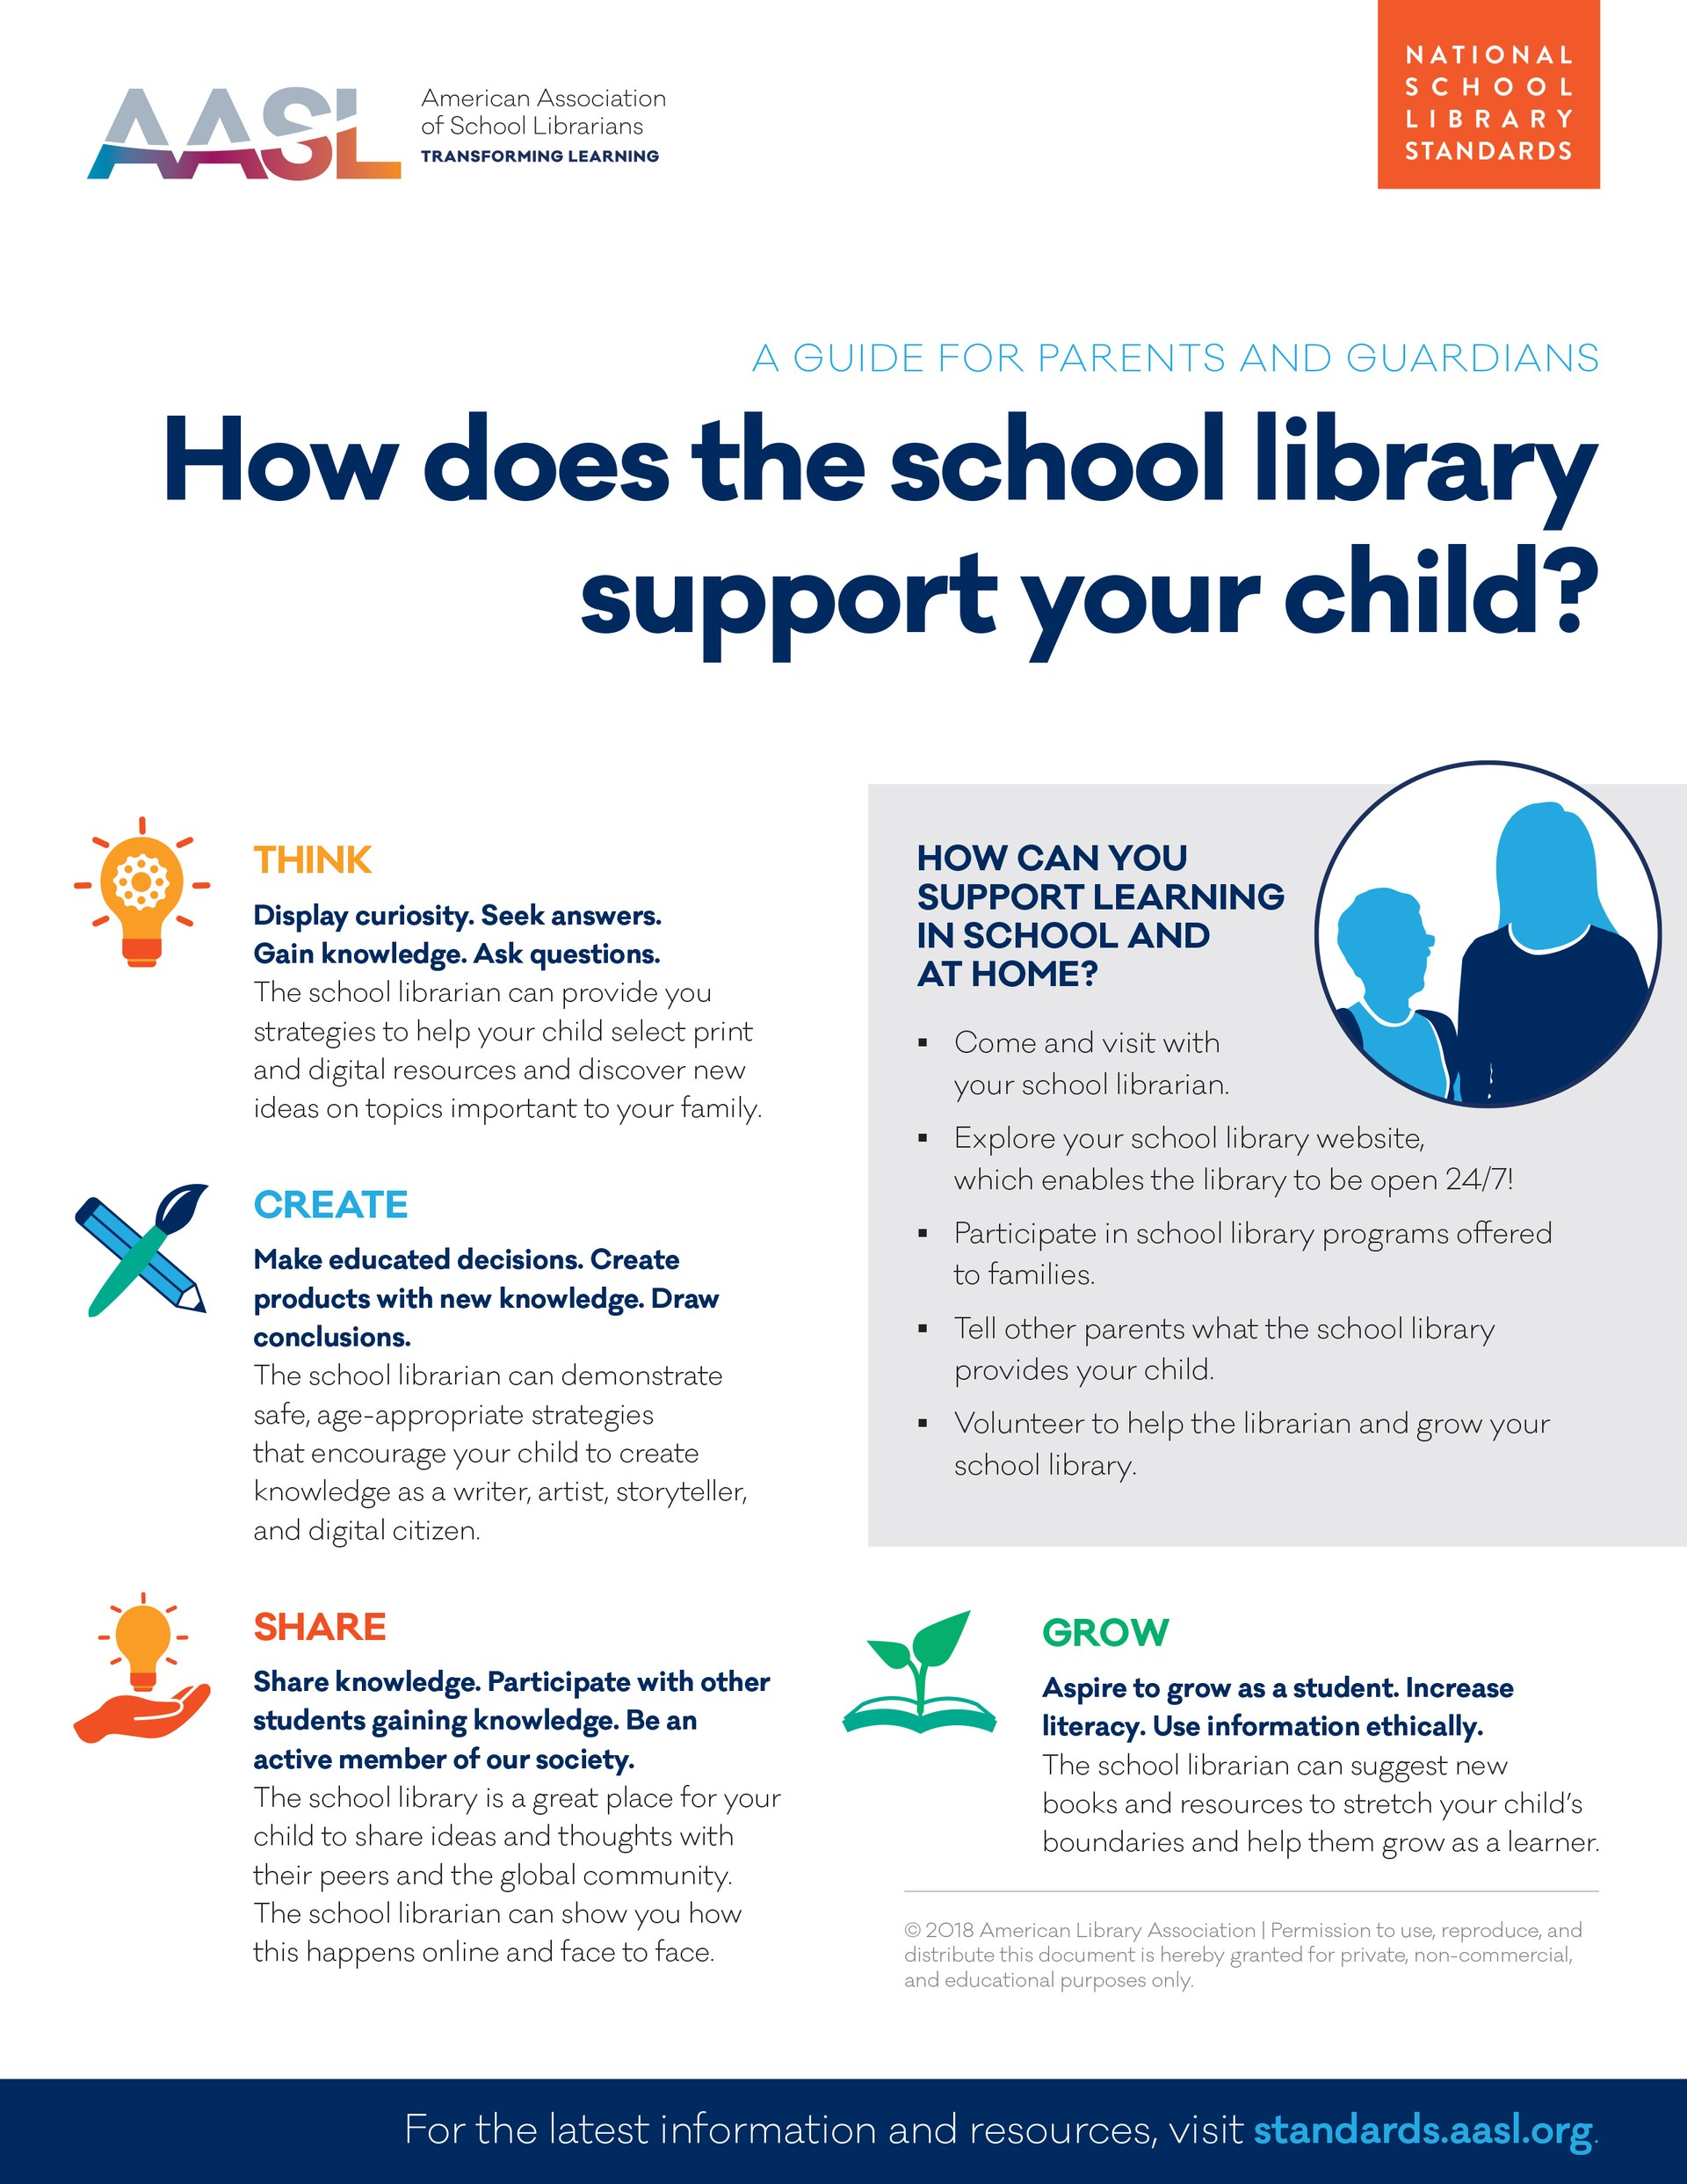 A guide for parents and guardians how does the school library support my child.